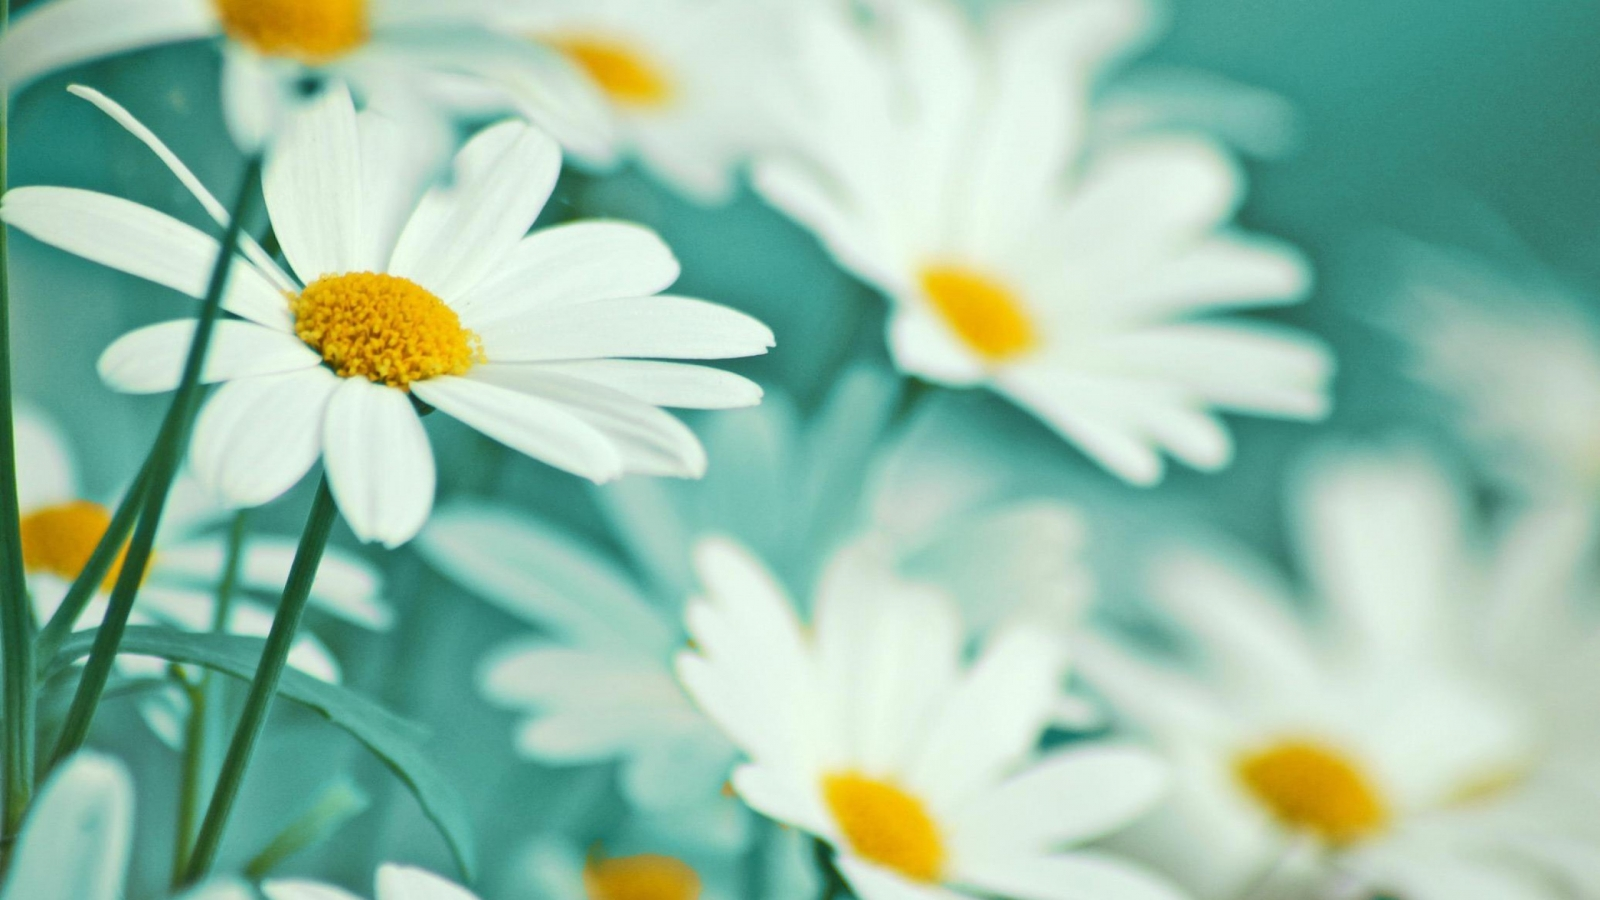 Flower White Background Download Free Hd Wallpapers For: 1600 X 900 Spring Wallpaper